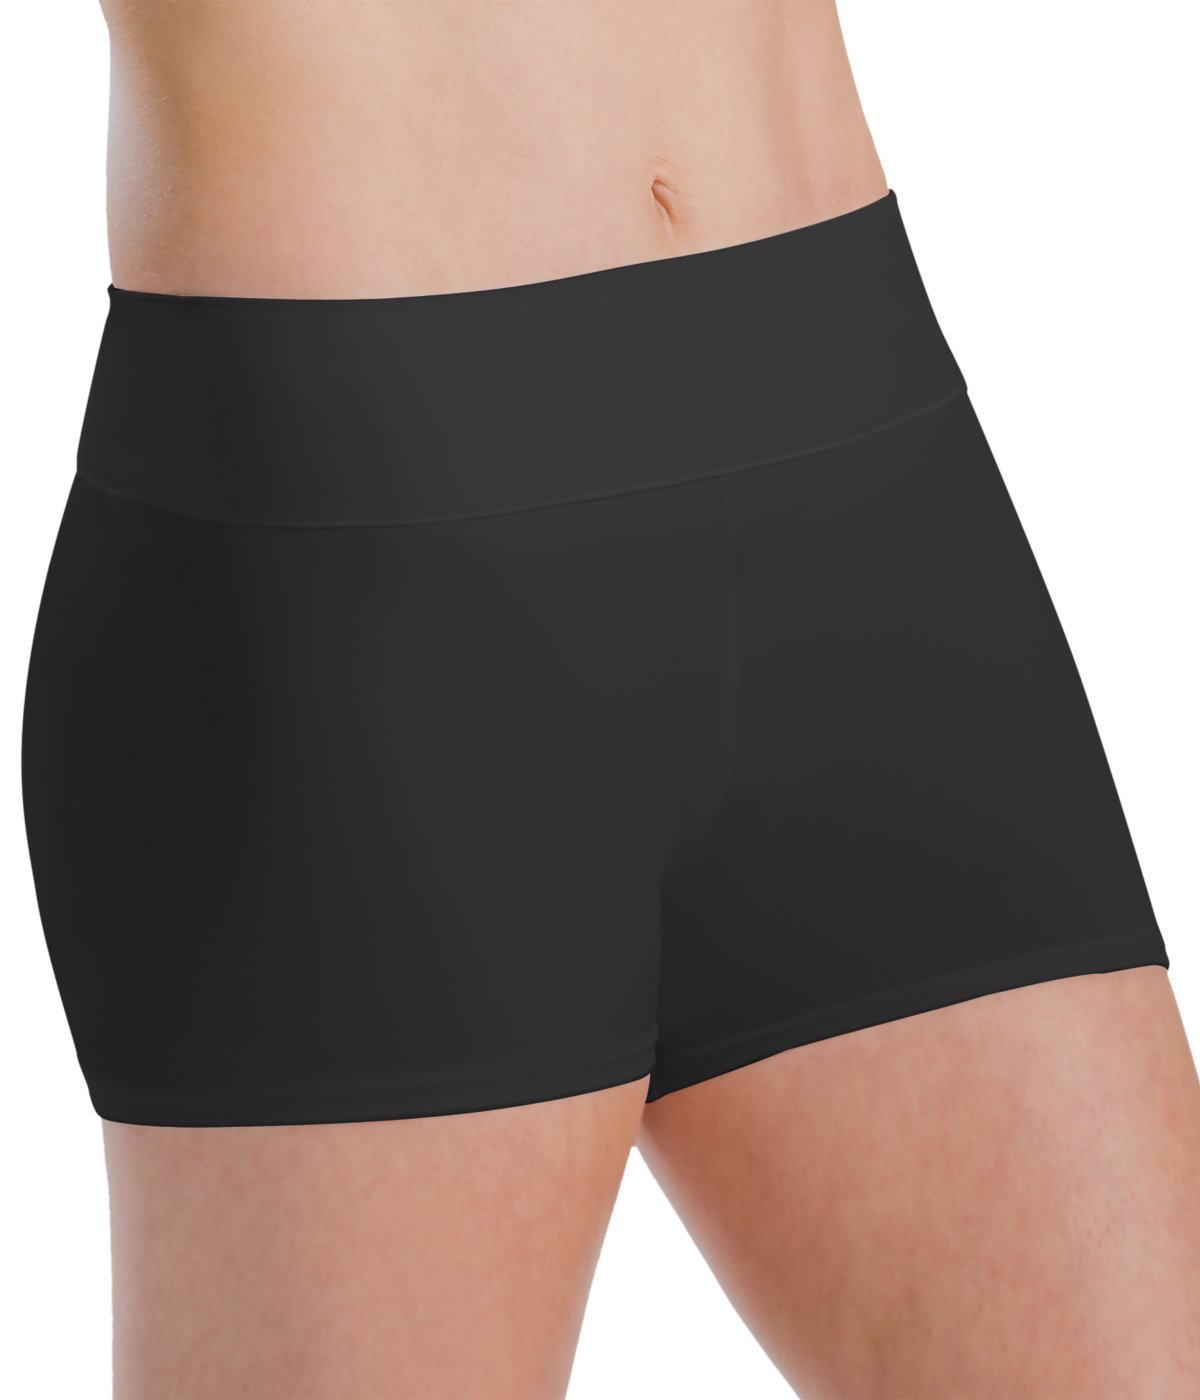 Motionwear Roll-Top Short, Black, Small Adult by Motionwear